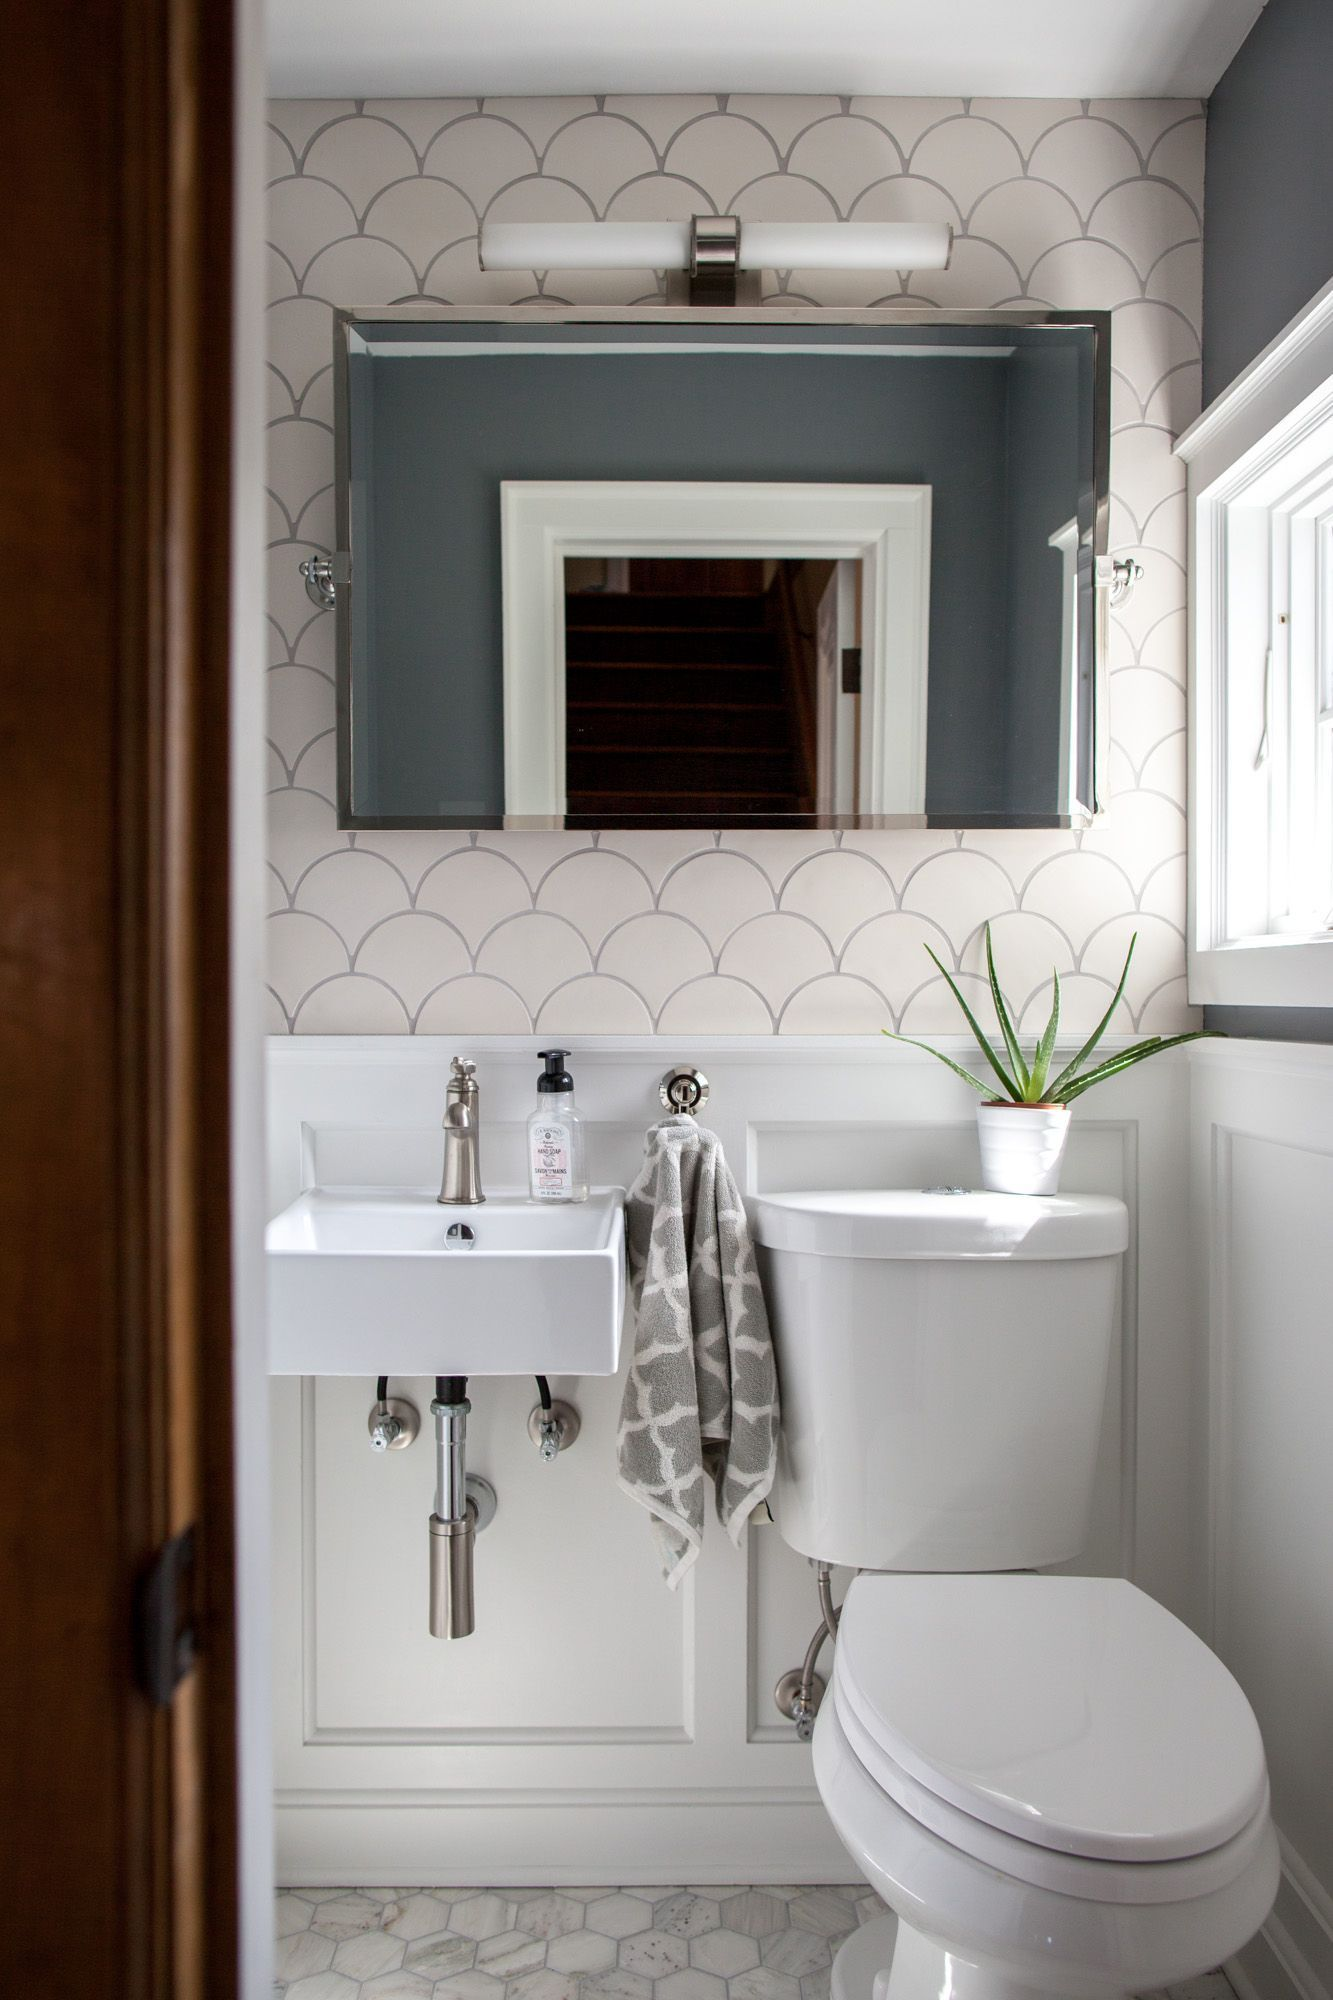 Tiny Powder Room Designs: Crazy And Beautiful Tiny Powder Room With Color And Tile